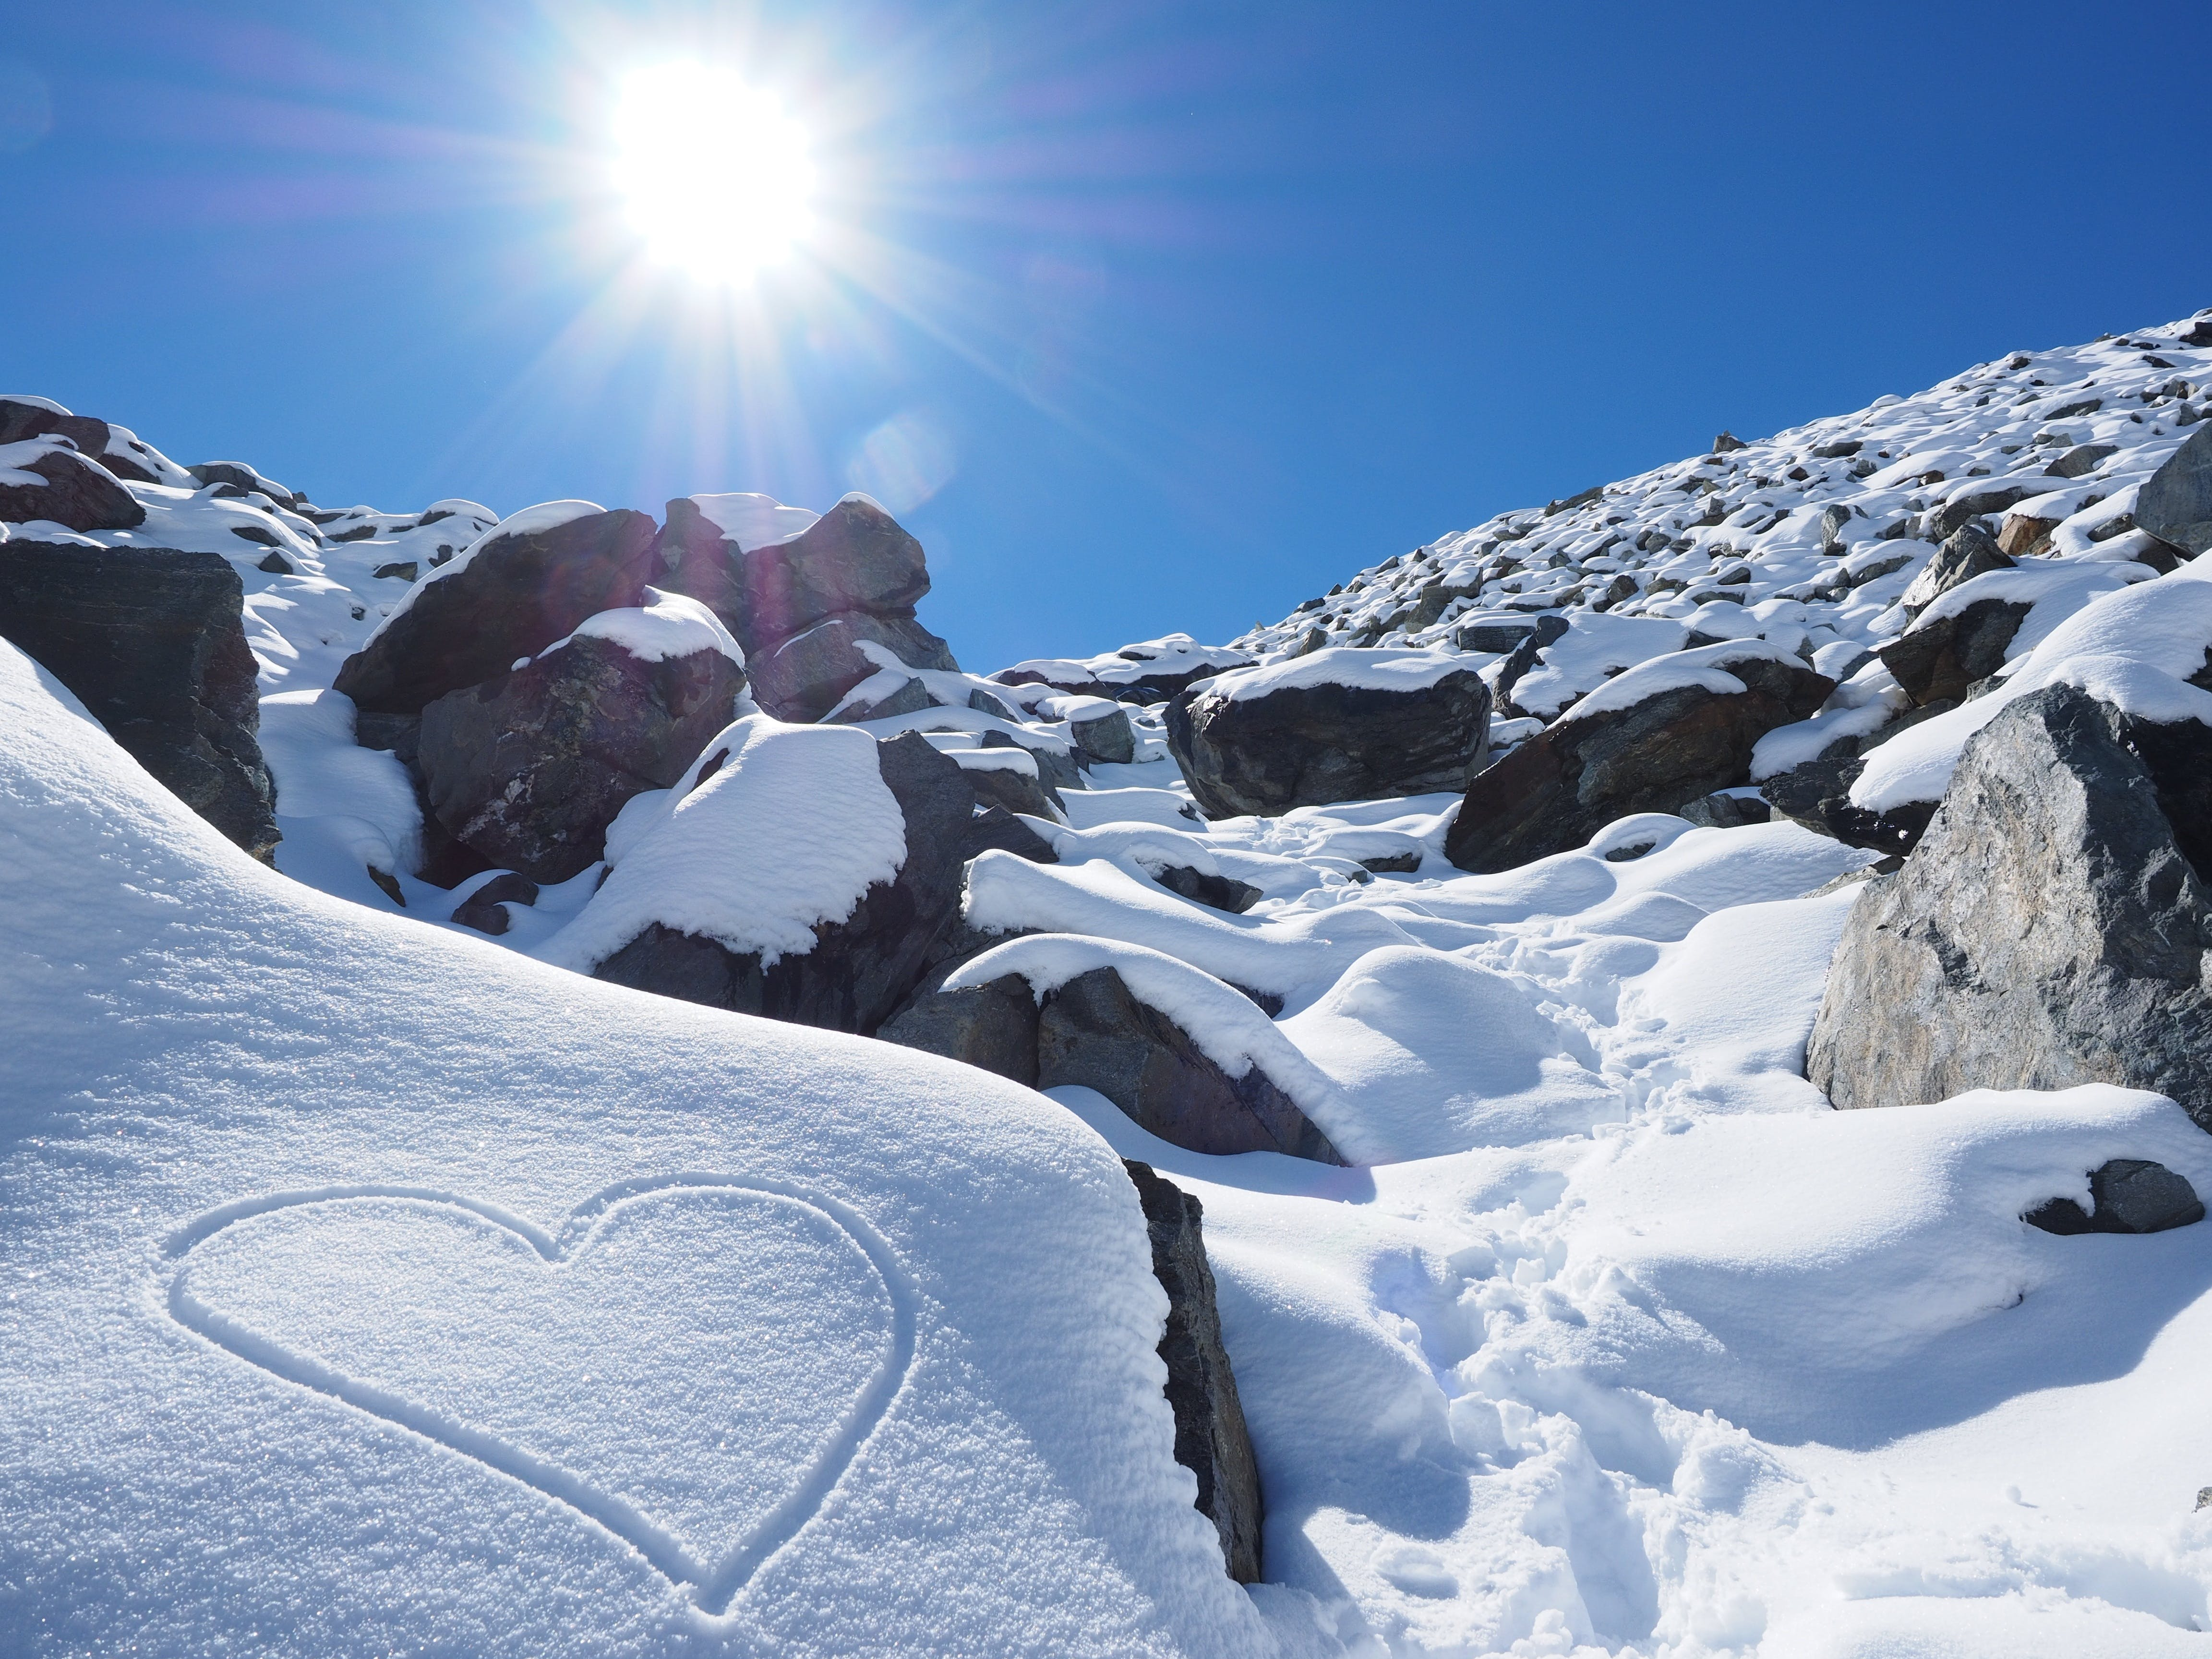 Gray Rocks Covered With Snow